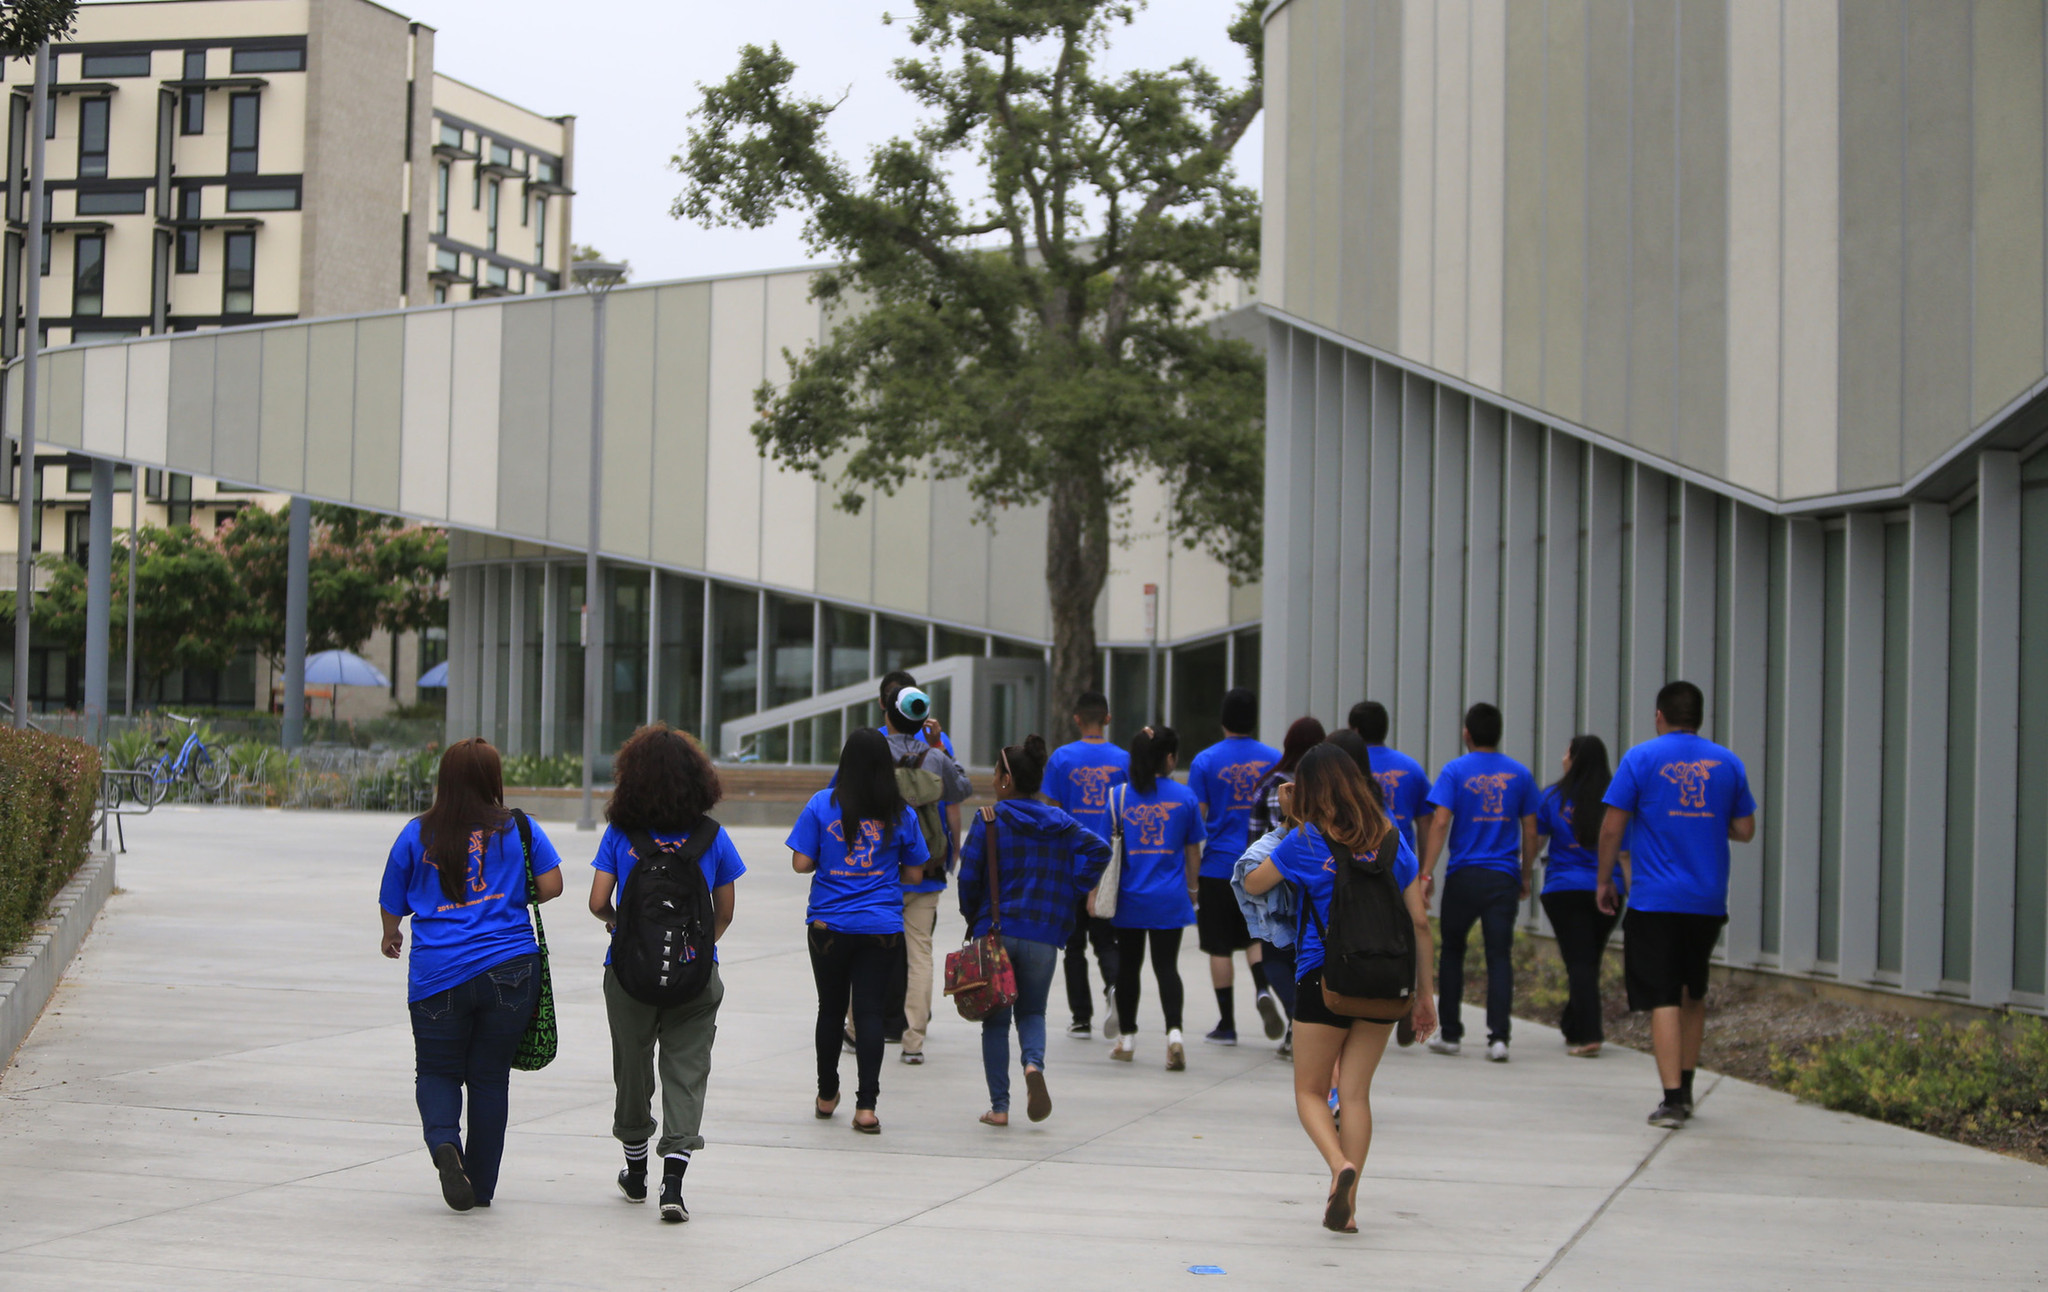 Incoming freshmen tour the dorms at California State University Fullerton last year. (Mark Boster / Los Angeles Times)